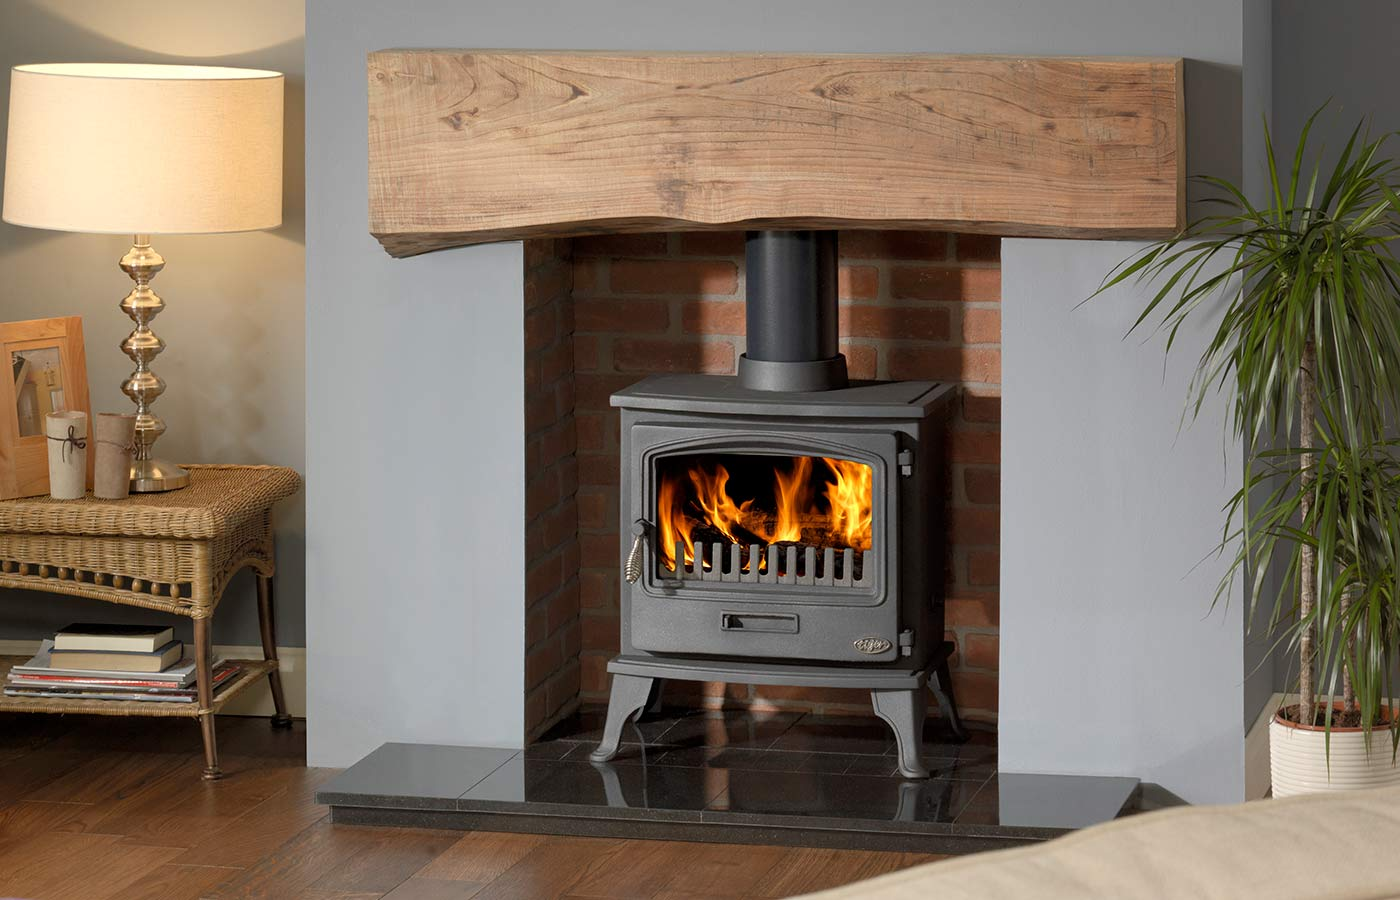 "Tiger Clean Burn Stove with Rustic Brick Chamber, 48"" Slabbed Granite Hearth, Slabbed Granite Back Hearth and Bespoke Beam"